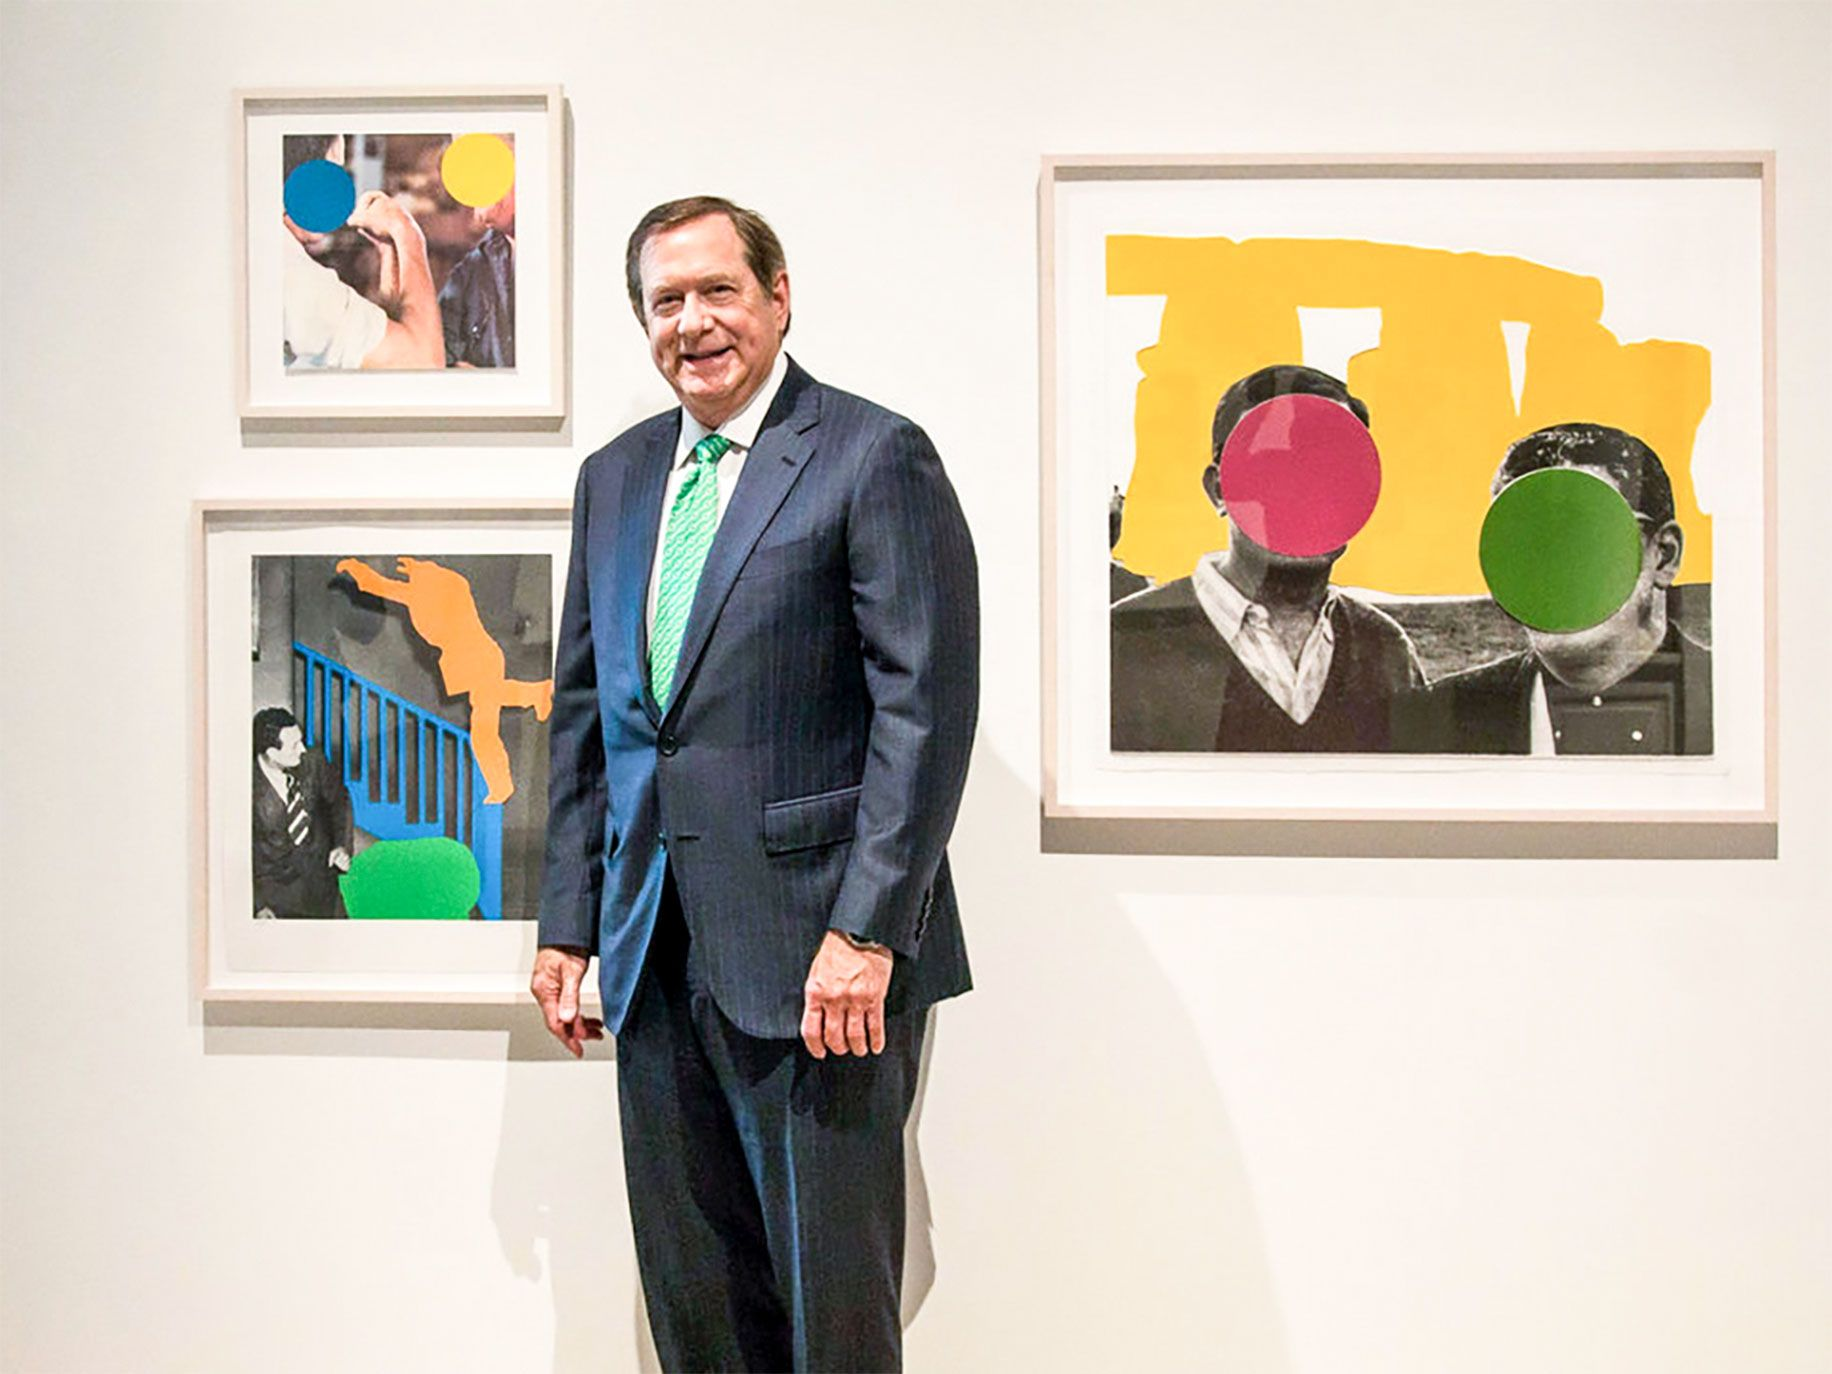 Real estate magnate Jordan D. Schnitzer poses with three works by John Baldessari. Schnitzer's private print collection—one of the largest in the world—contains more than 13,000 works by Andy Warhol, Roy Lichtenstein, Barbara Kruger, and others.